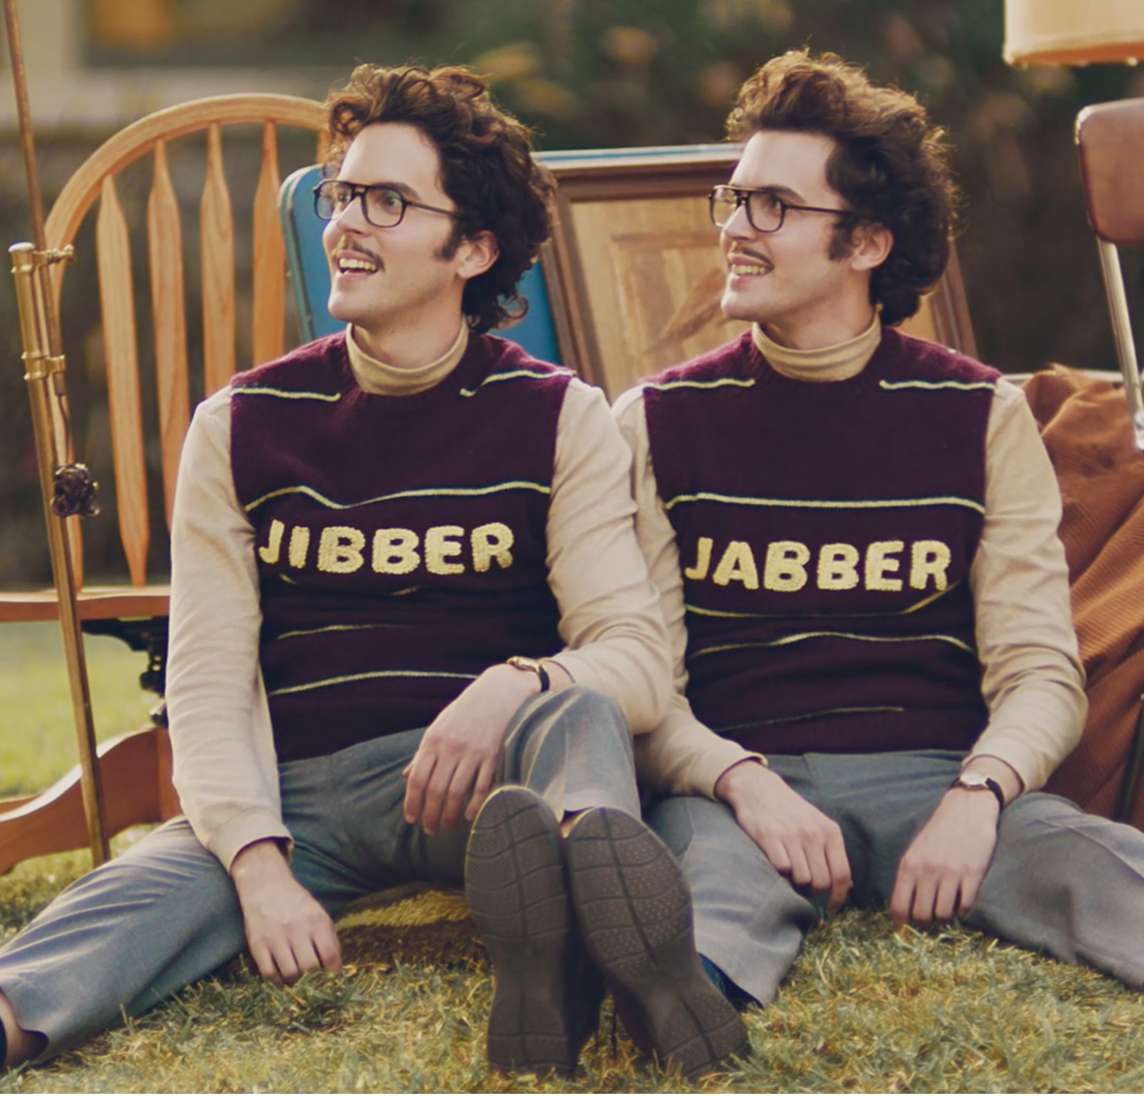 Two men with sweater vests reading Jibber and Jabber sitting on a lawn